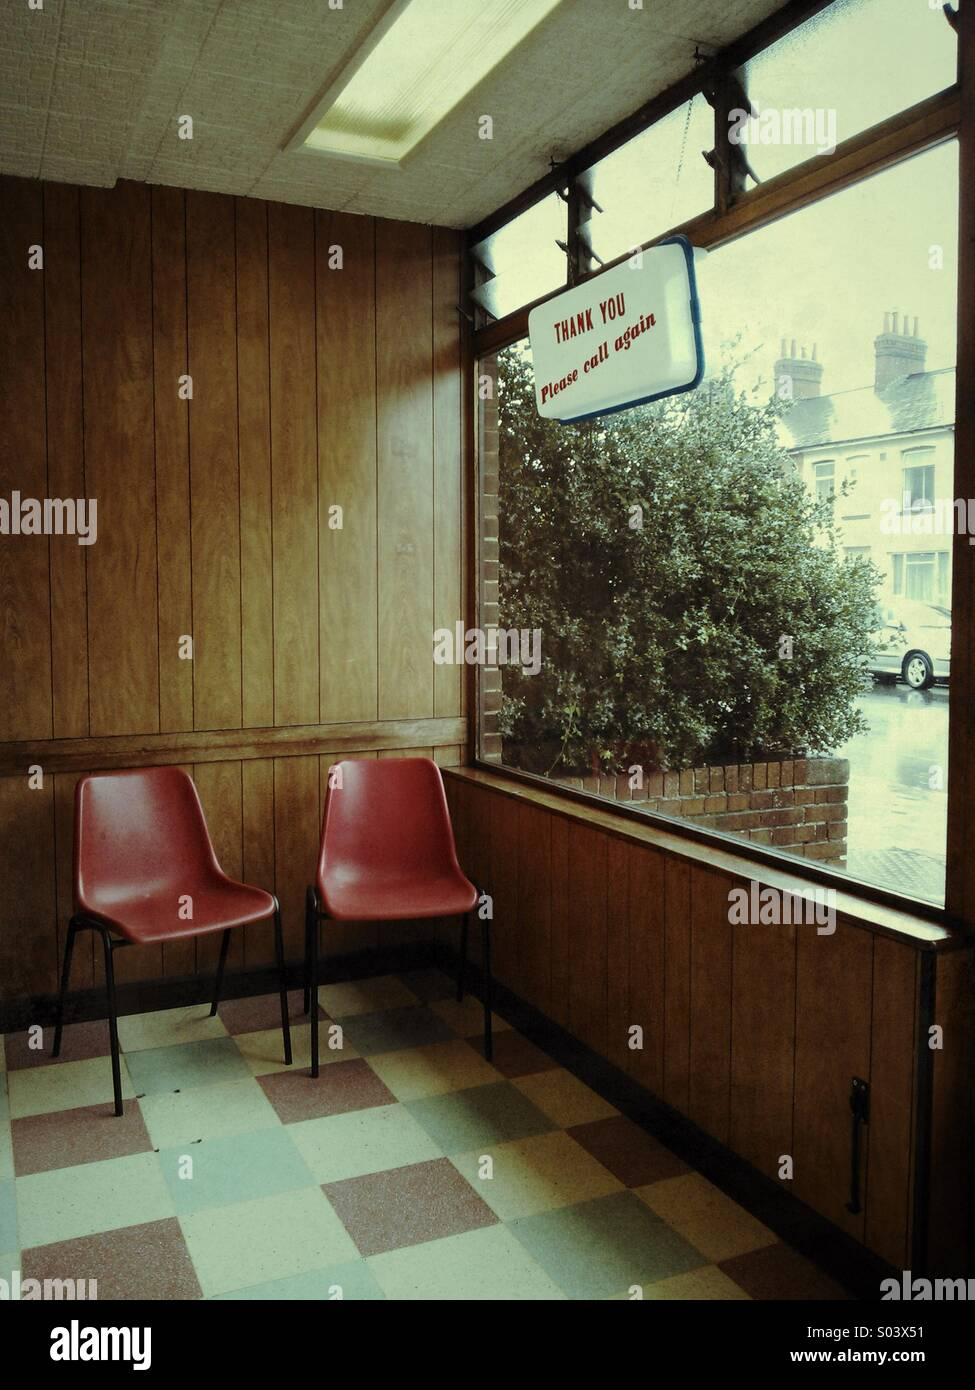 Retro style laundrette interior with red plastic waiting chairs. - Stock Image